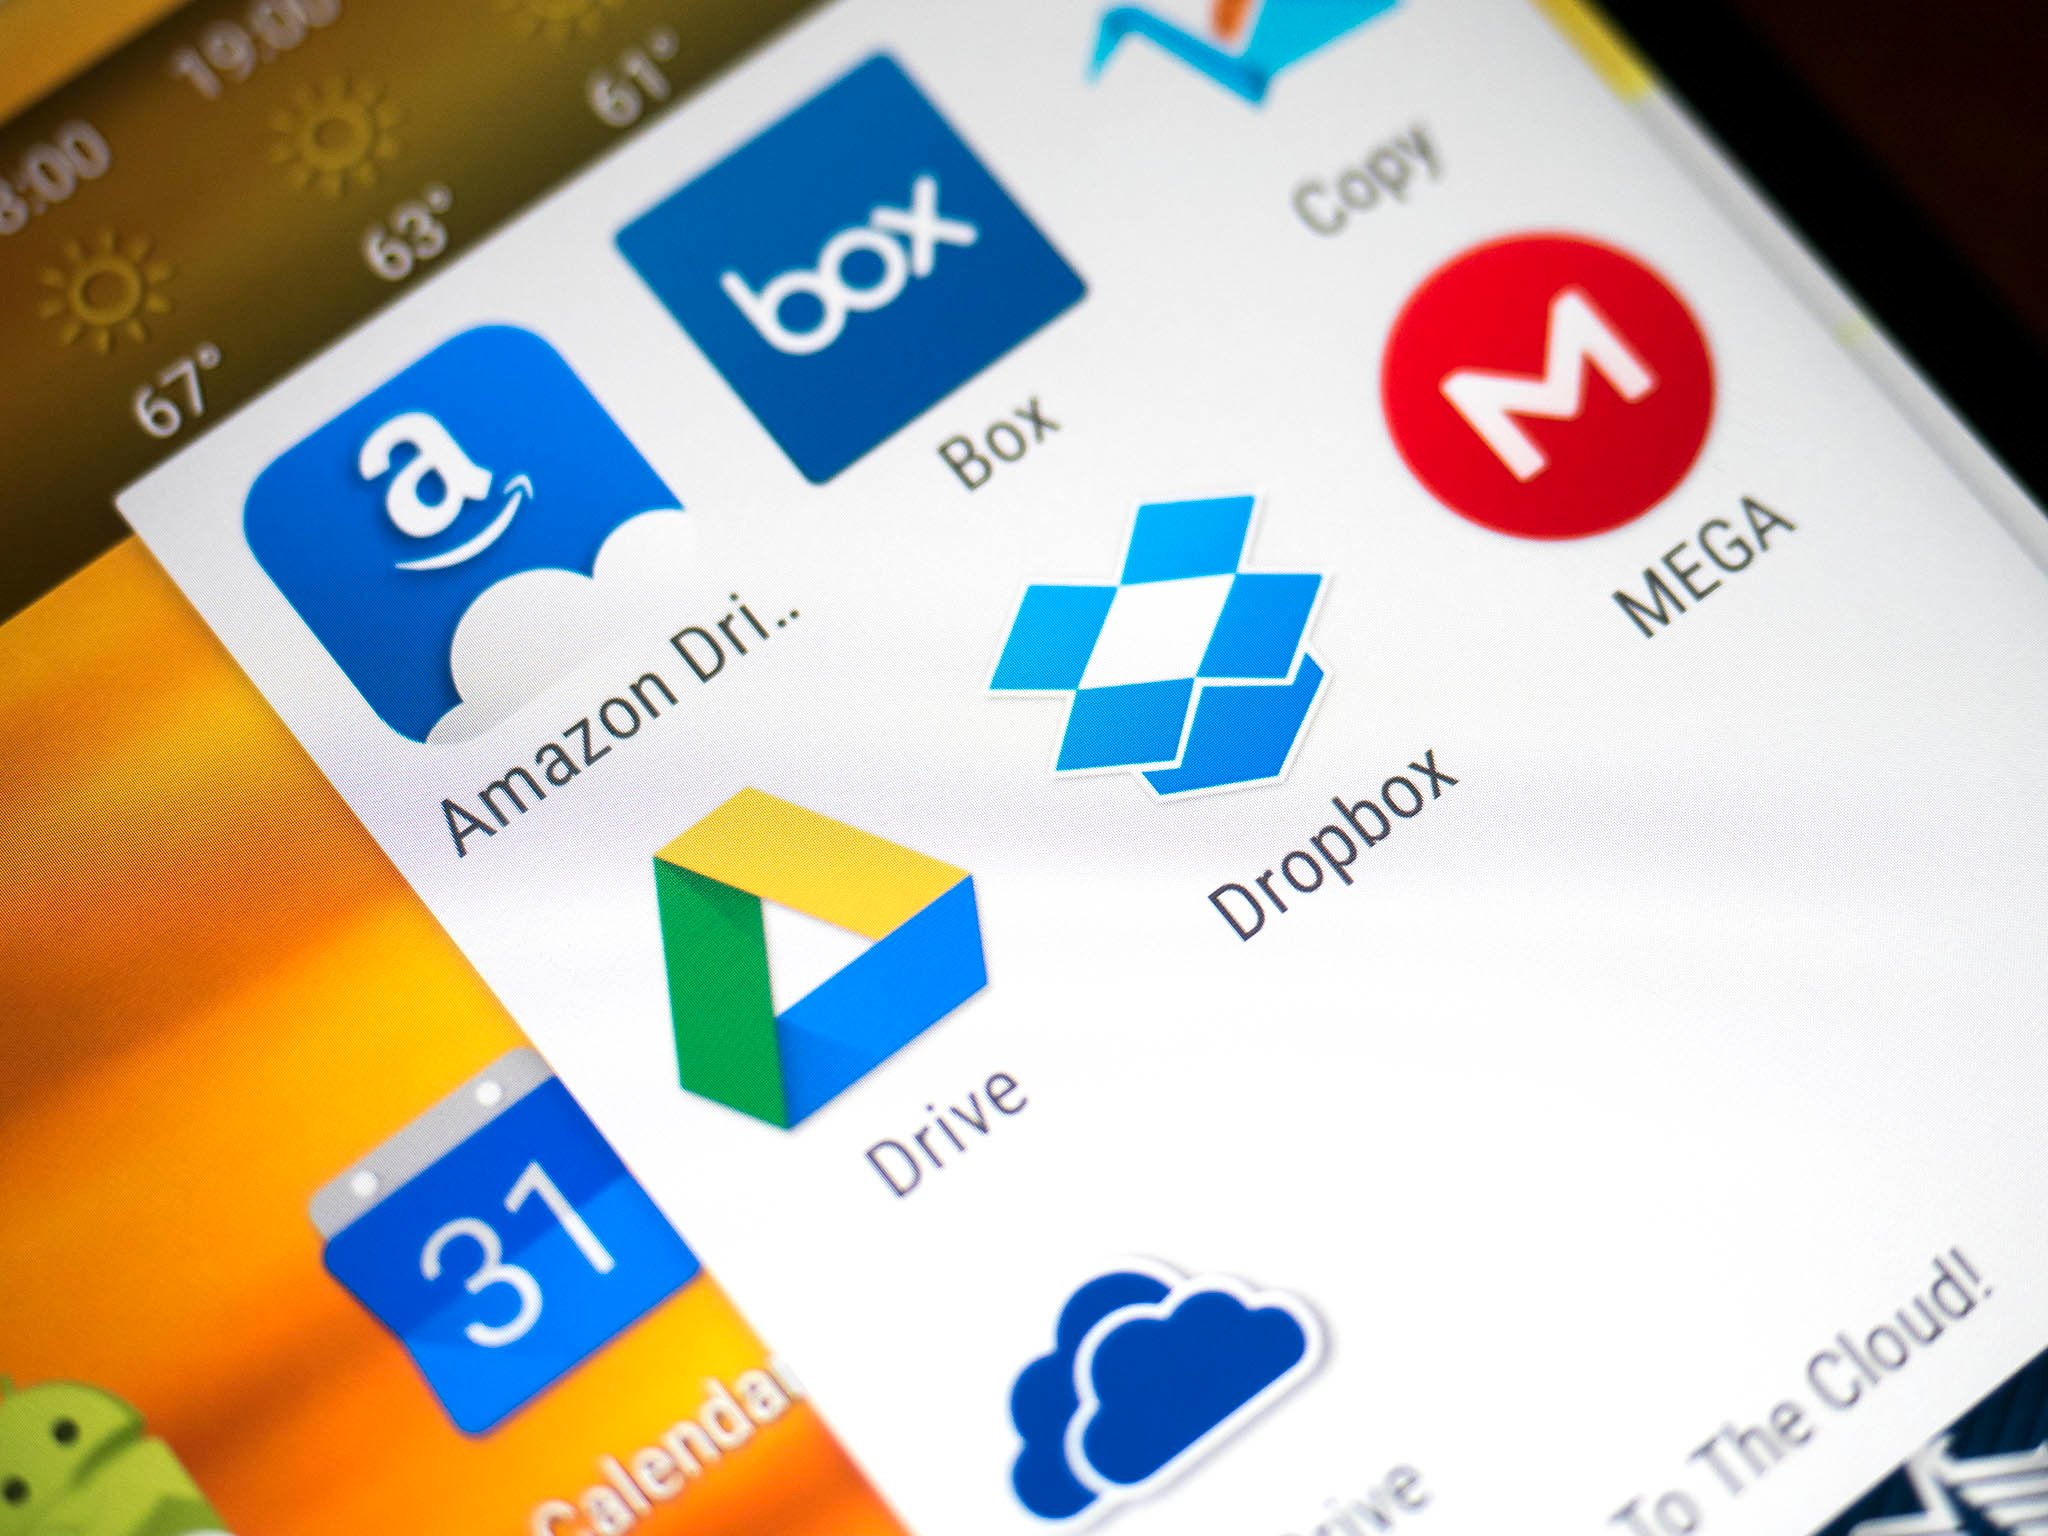 Noble Cloud Storage Options Cheap Cloud Storage Which One Saves You Android Central How Much Is 1tb Xbox One How Much Is 1tb Ssd dpreview How Much Is 1tb